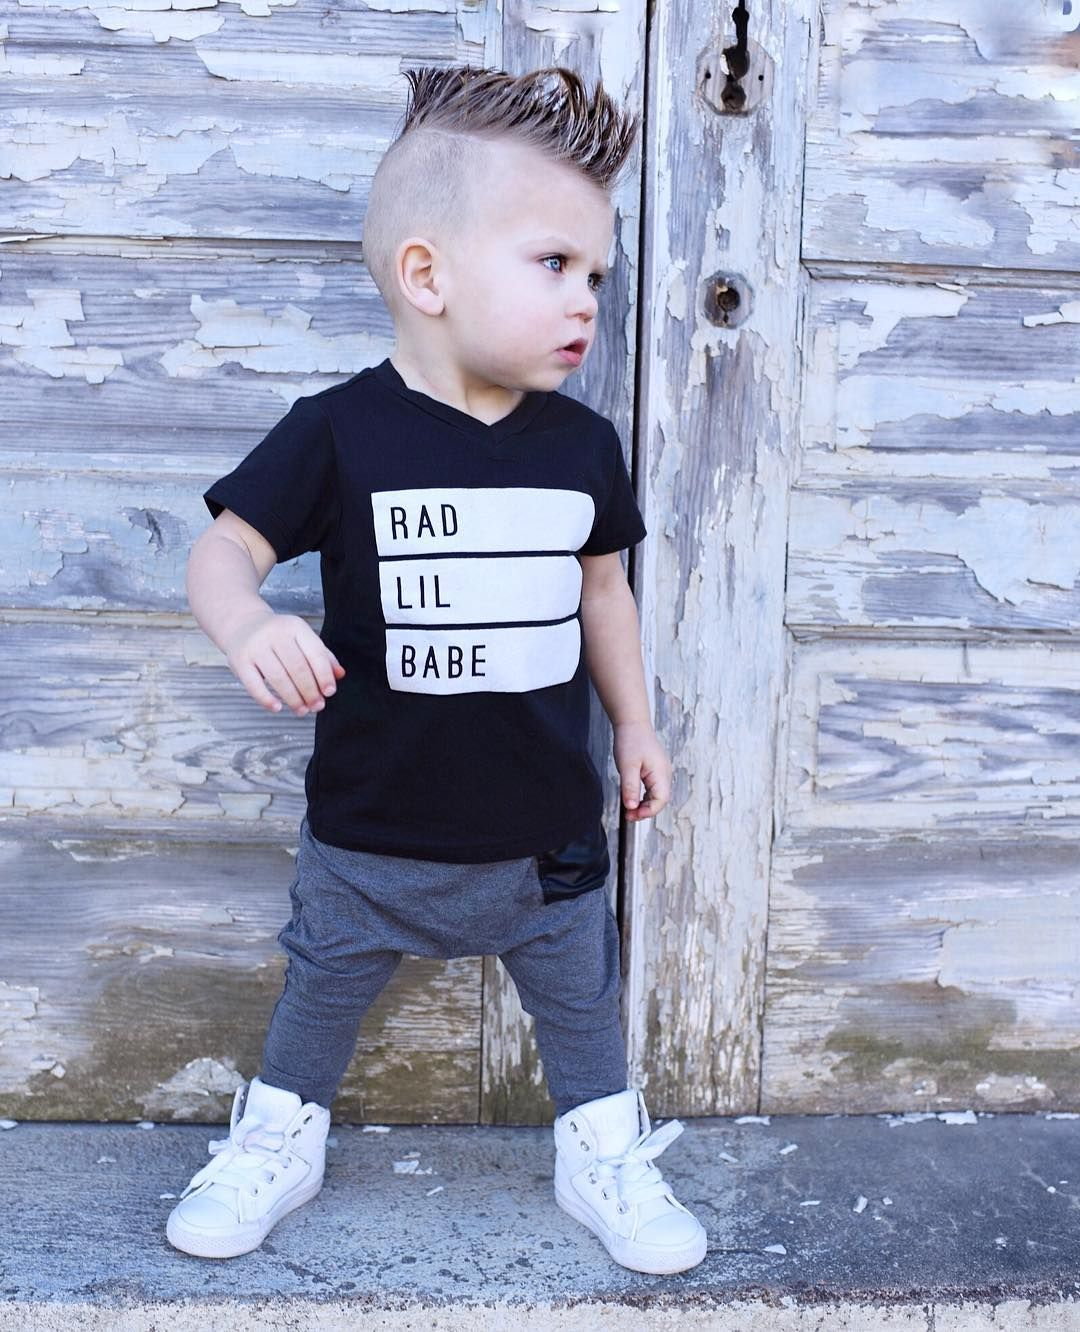 3609883a9a776 RAD BABE T-Shirt, Bamboo Harems, Bamboo Leggings, Baby Leggings, Faux  Leather, Trendy Baby Clothes, Hipster Baby Clothes, Streetwear, Kids Fashion